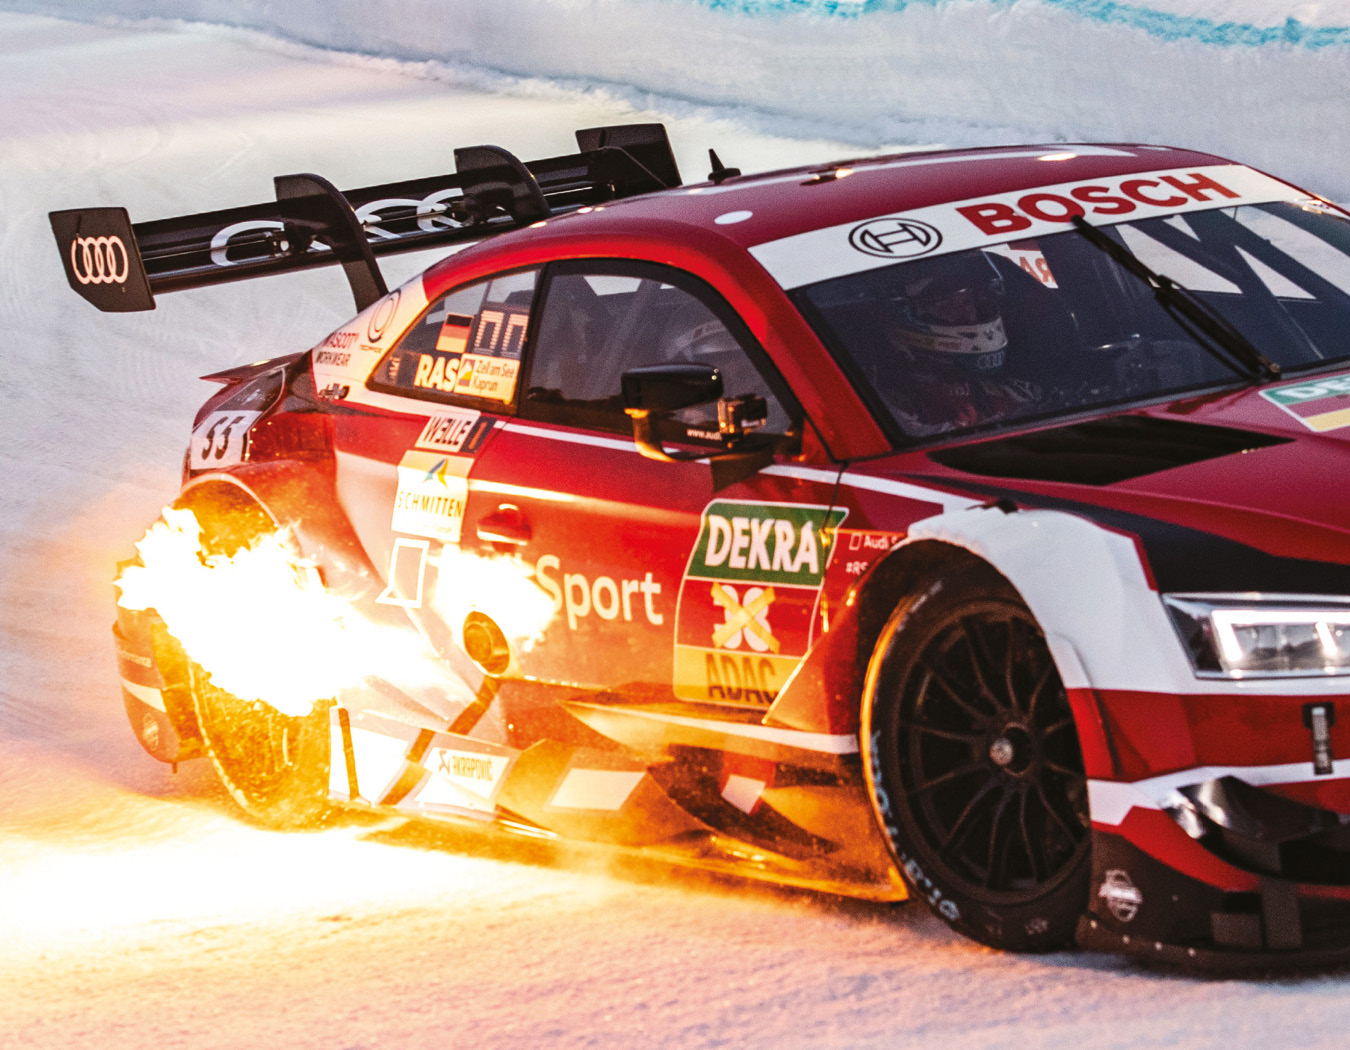 Audi RS5 DTM struggled to put the power down in 2017 champ Rast's hands on unsuitable spikes